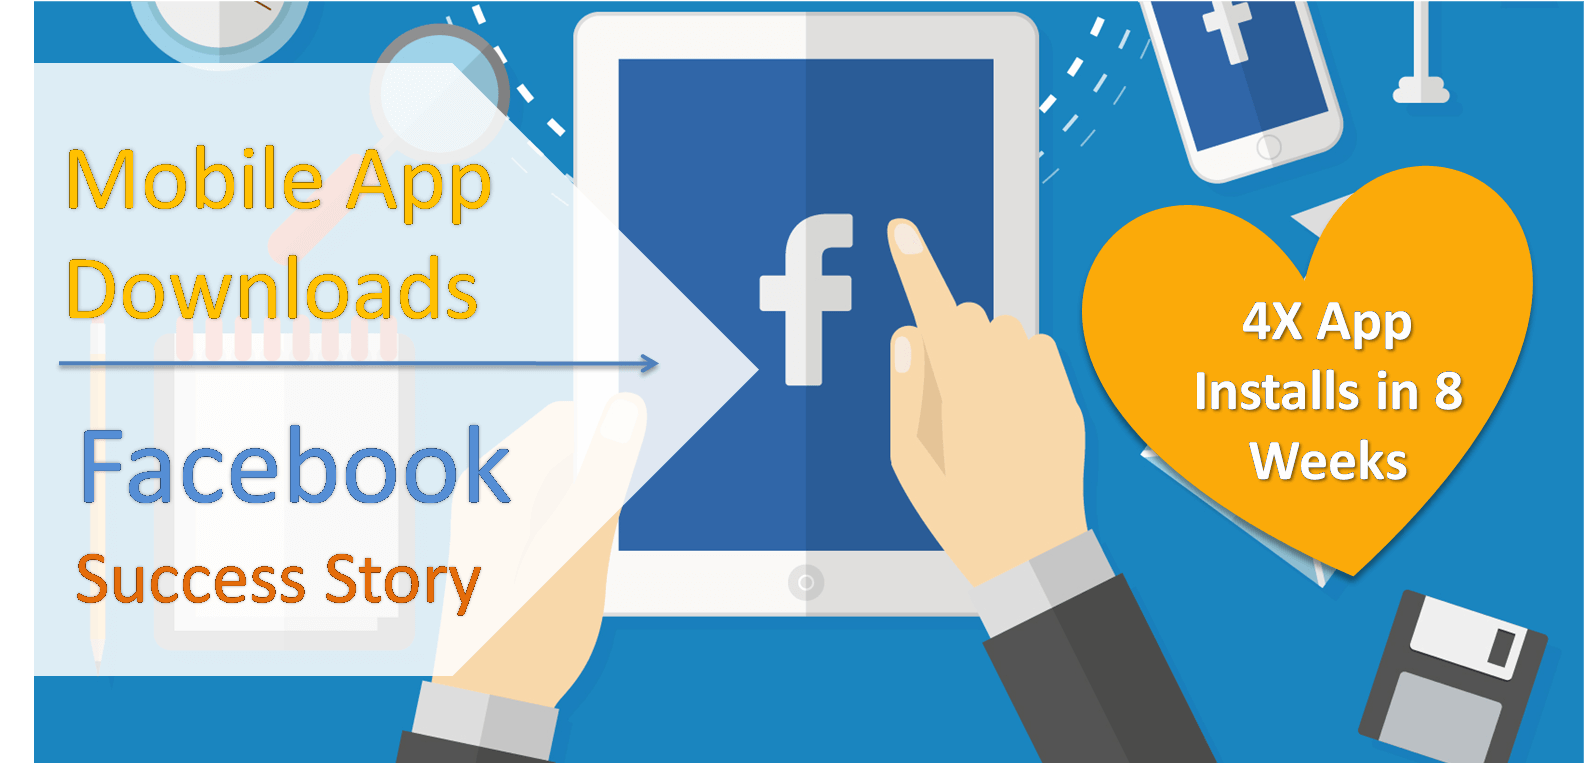 Facebook Success Story - Mobile App Installs